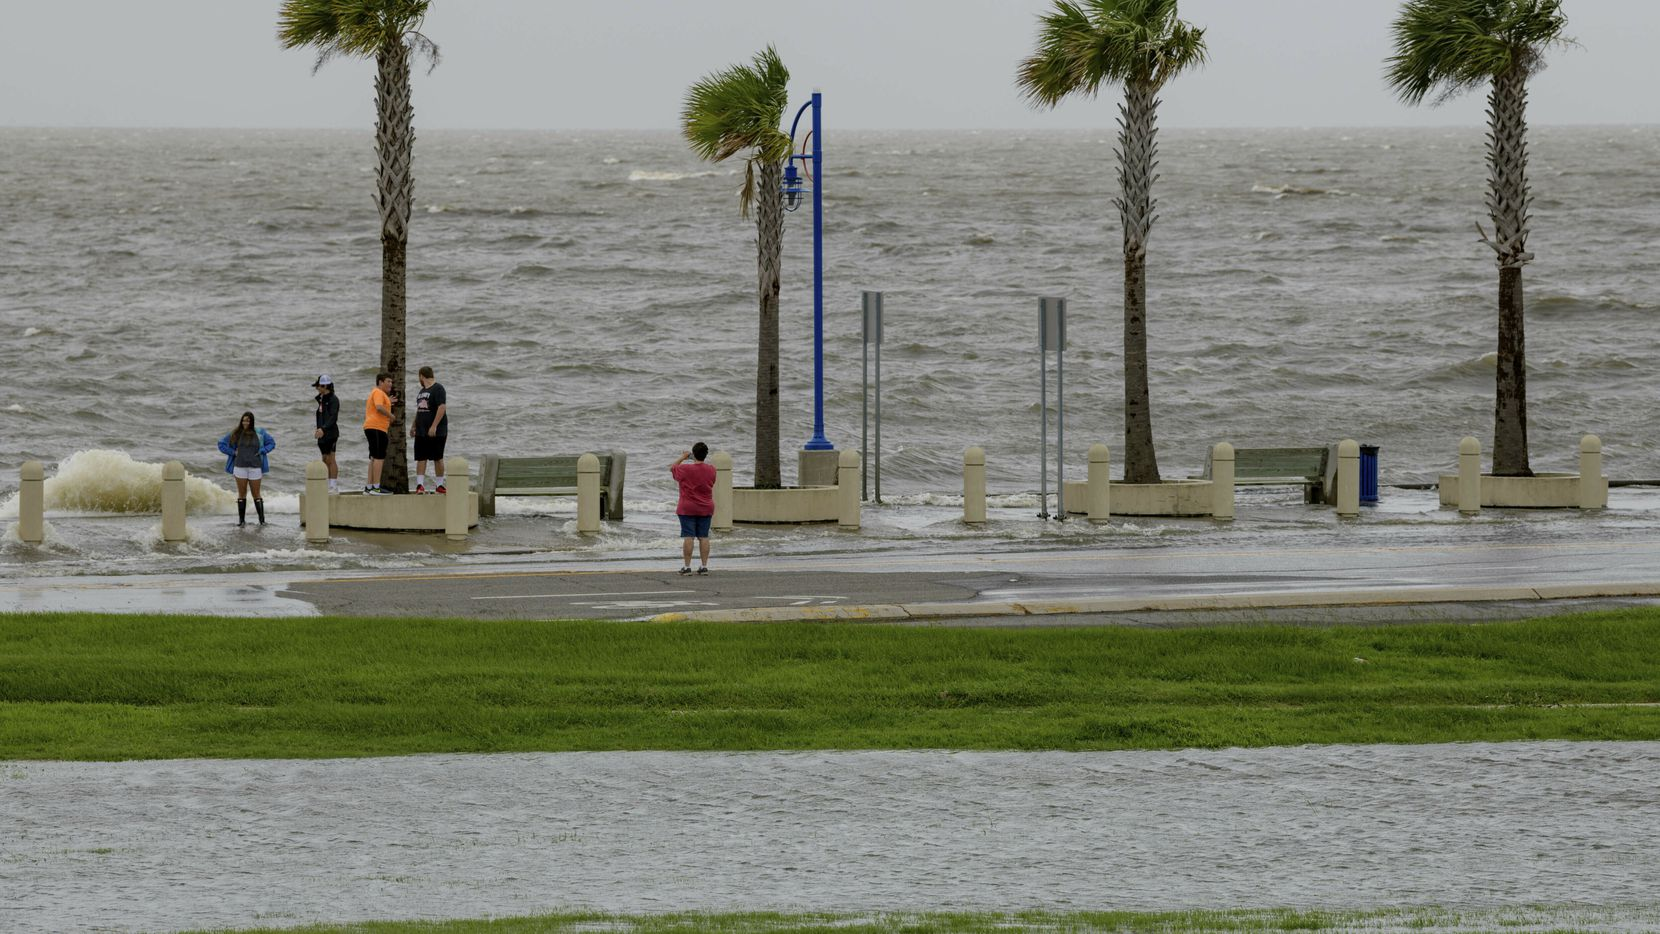 People check out the waves on Lakeshore Drive in New Orleans on Friday as water moves in from Lake Pontchartrain from Tropical Storm Barry's storm surge.